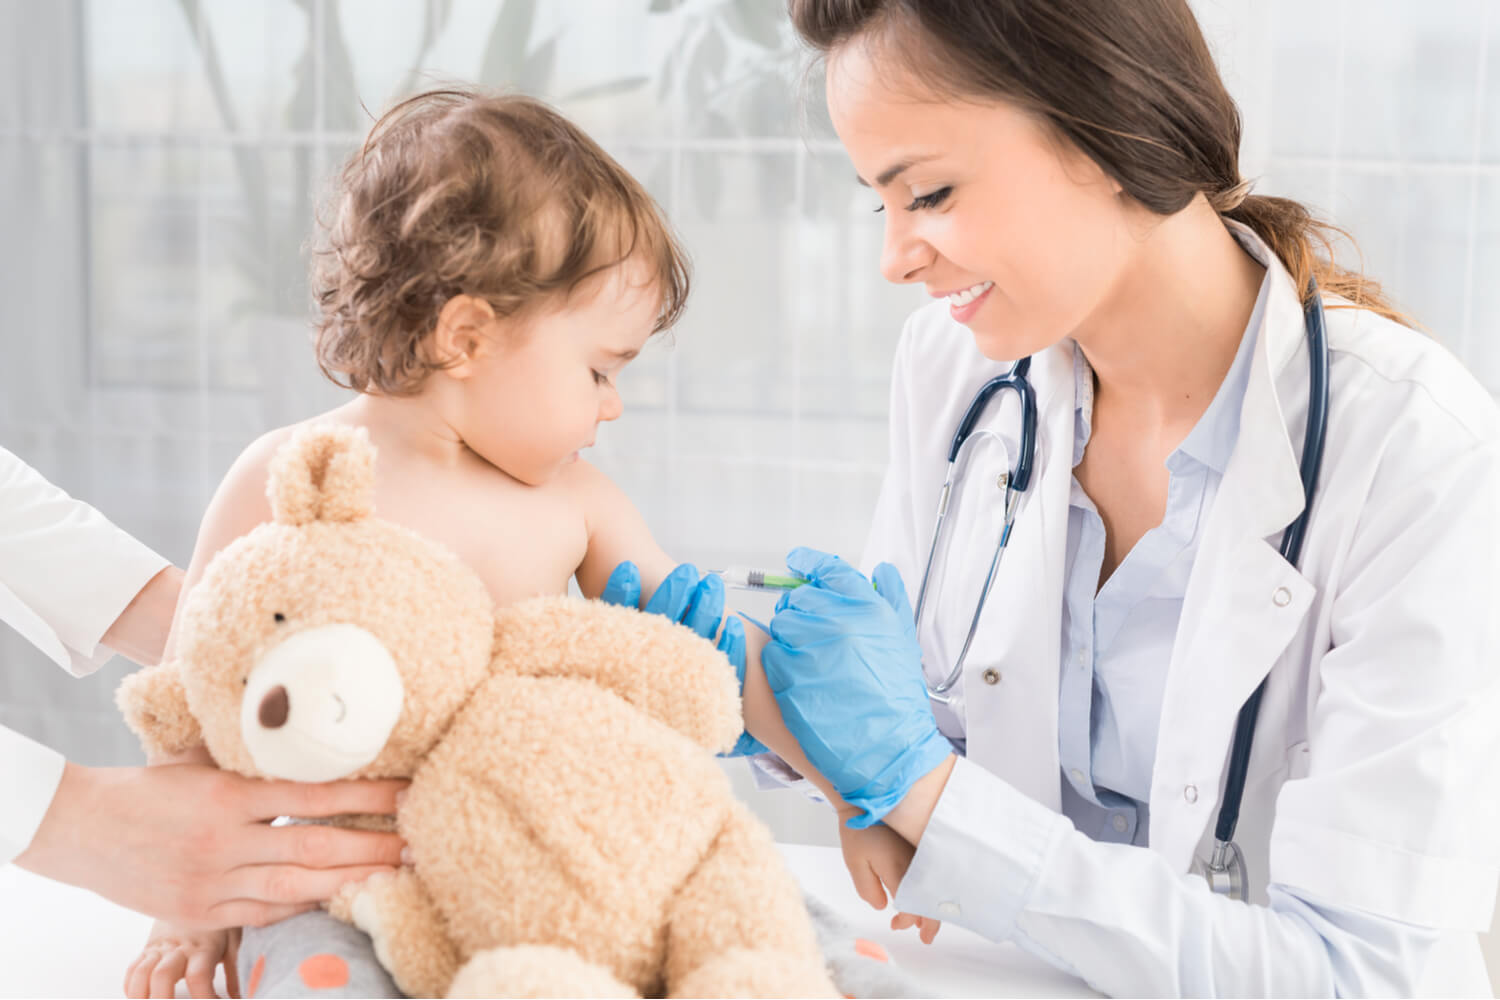 doctor giving MMR vaccine to baby